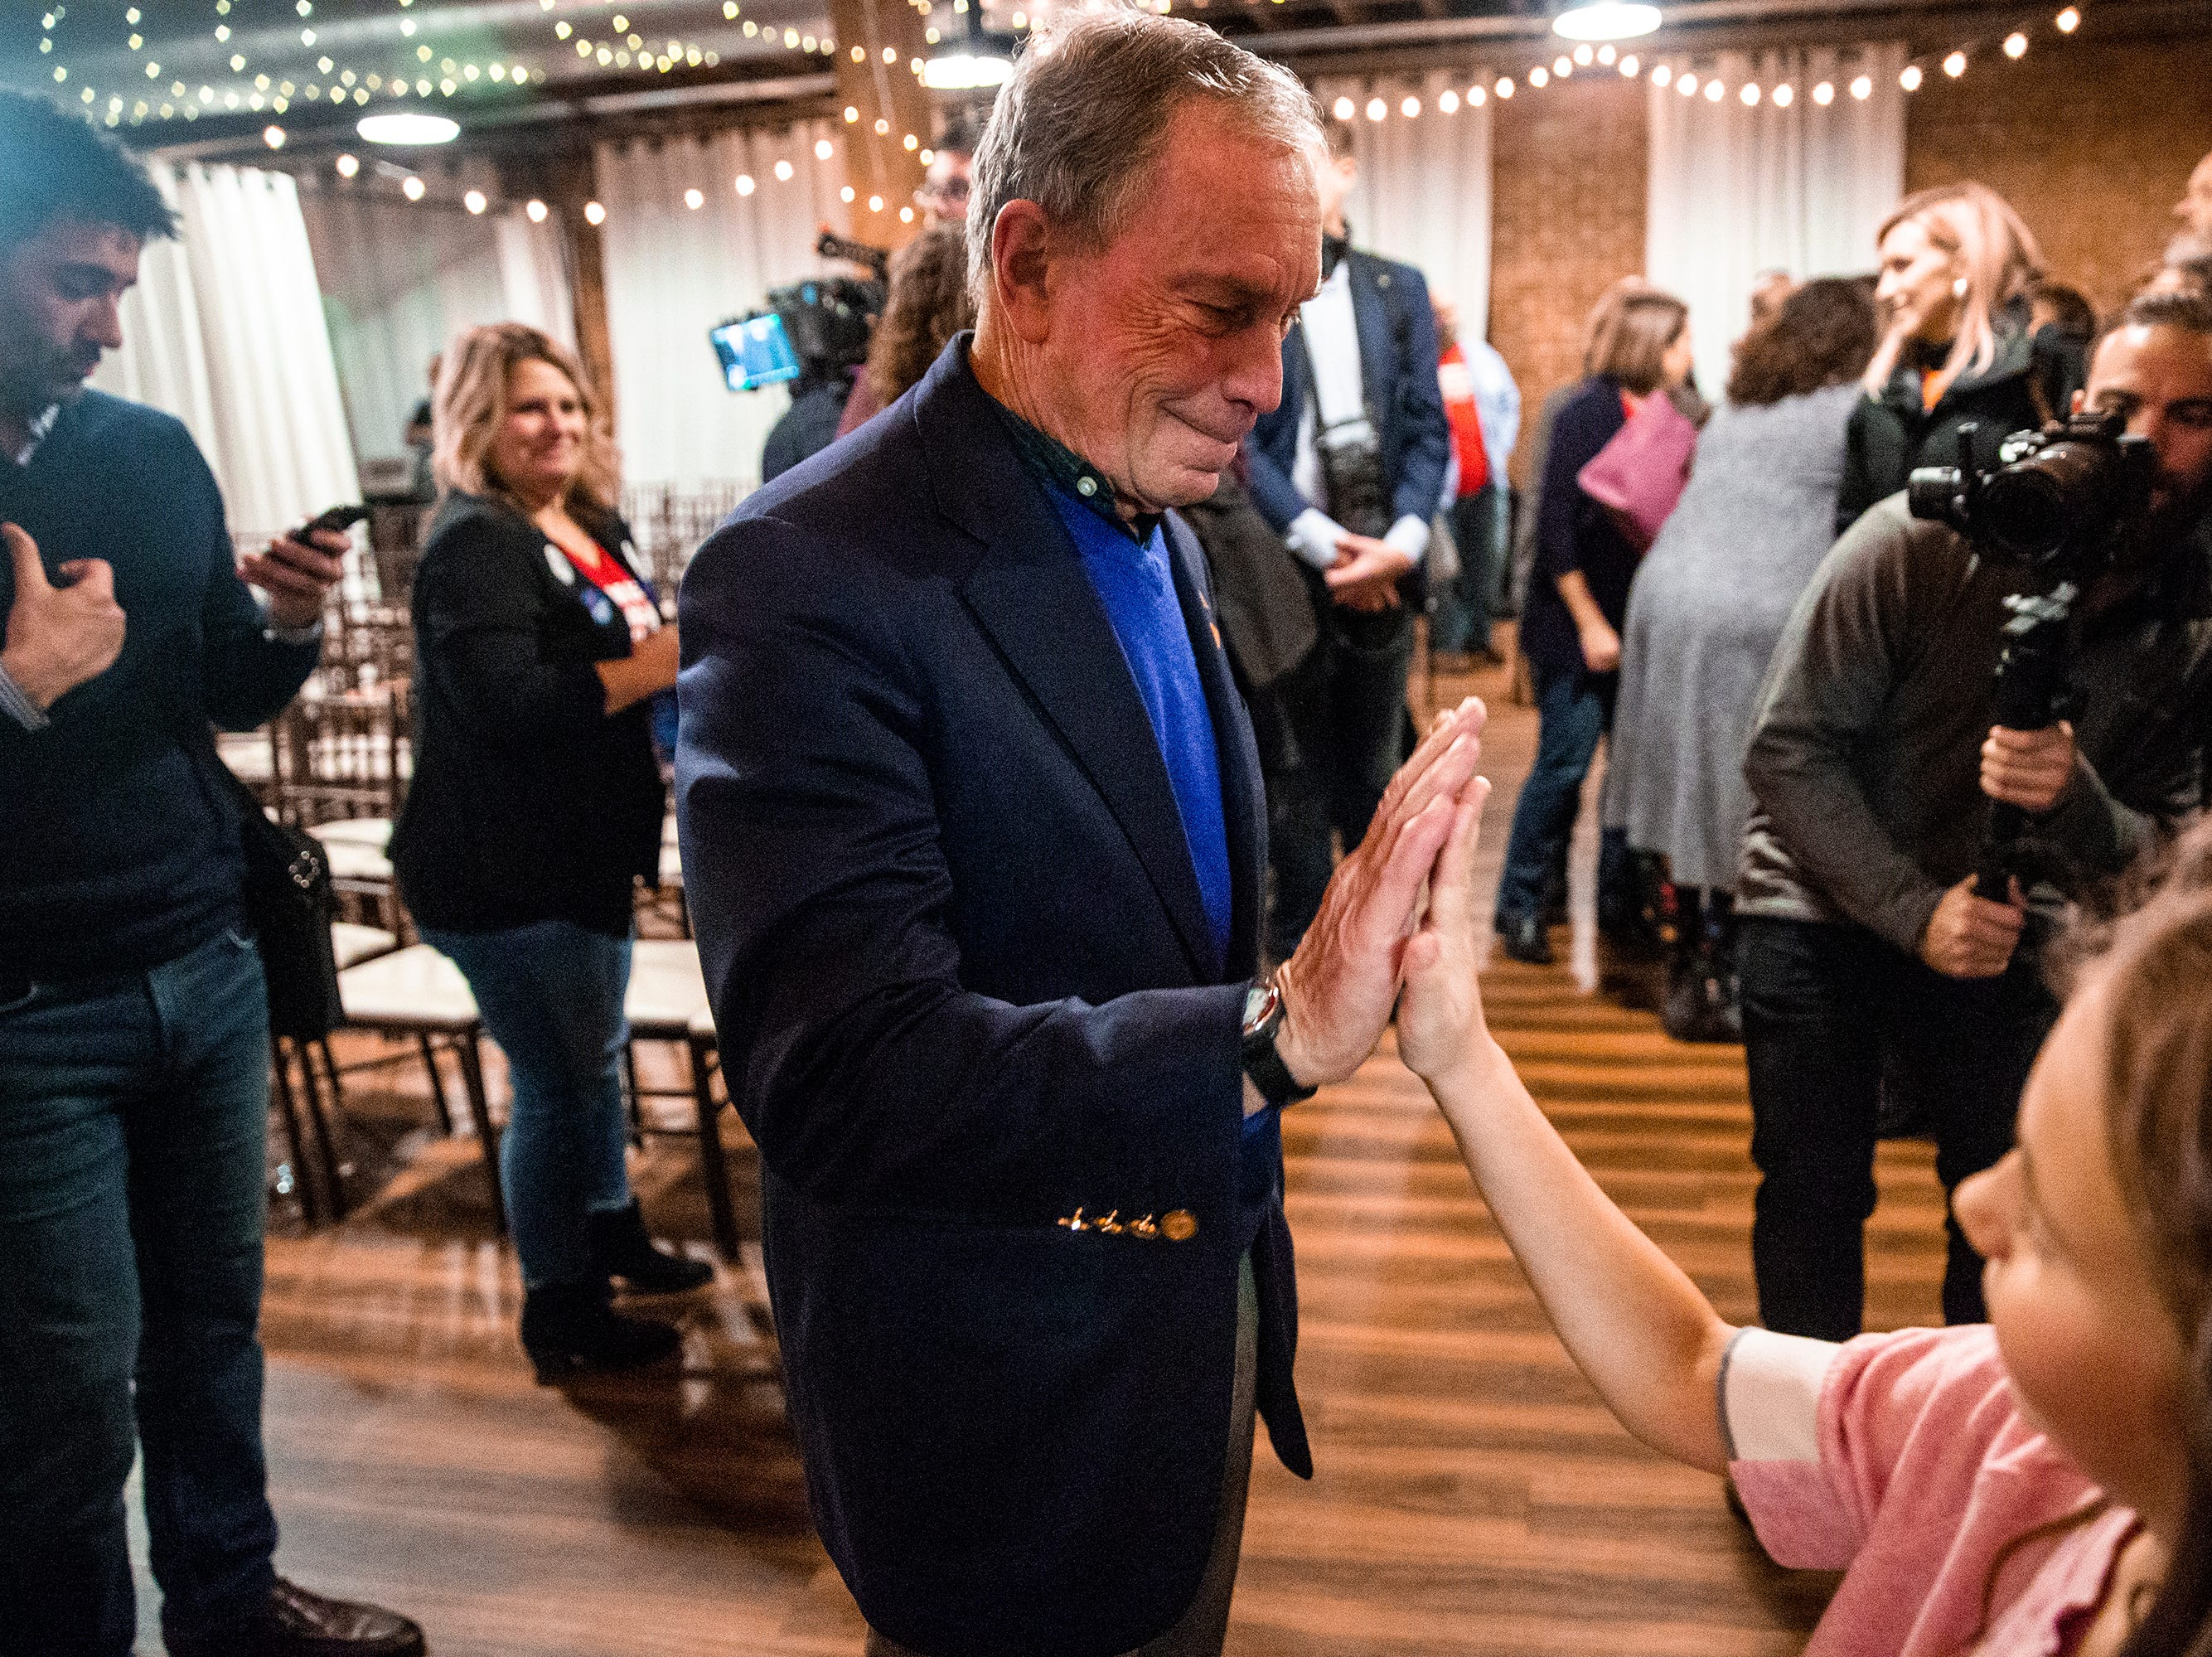 Former New York City Mayor Michael Bloomberg gives a high-five to a young girl at the Iowa Moms Demand Action member meeting he was visiting on Tuesday, Dec. 4, 2018, at the Iowa Taproom in Des Moines.